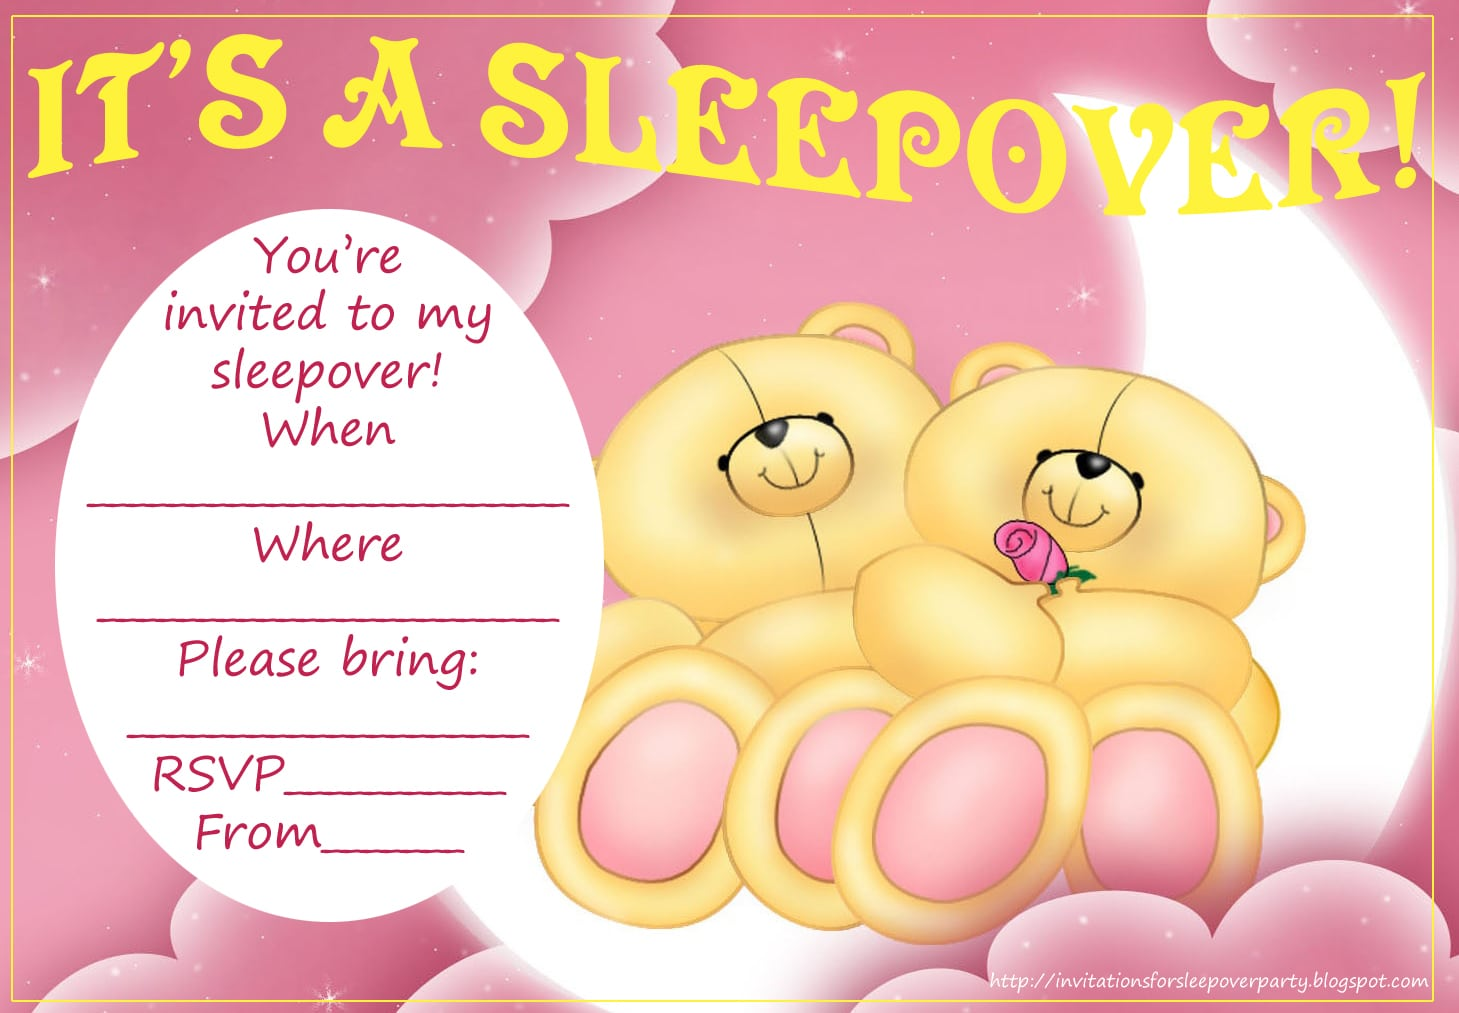 Teddy Bear Party Invitations For A Sleepover  Geqnjo